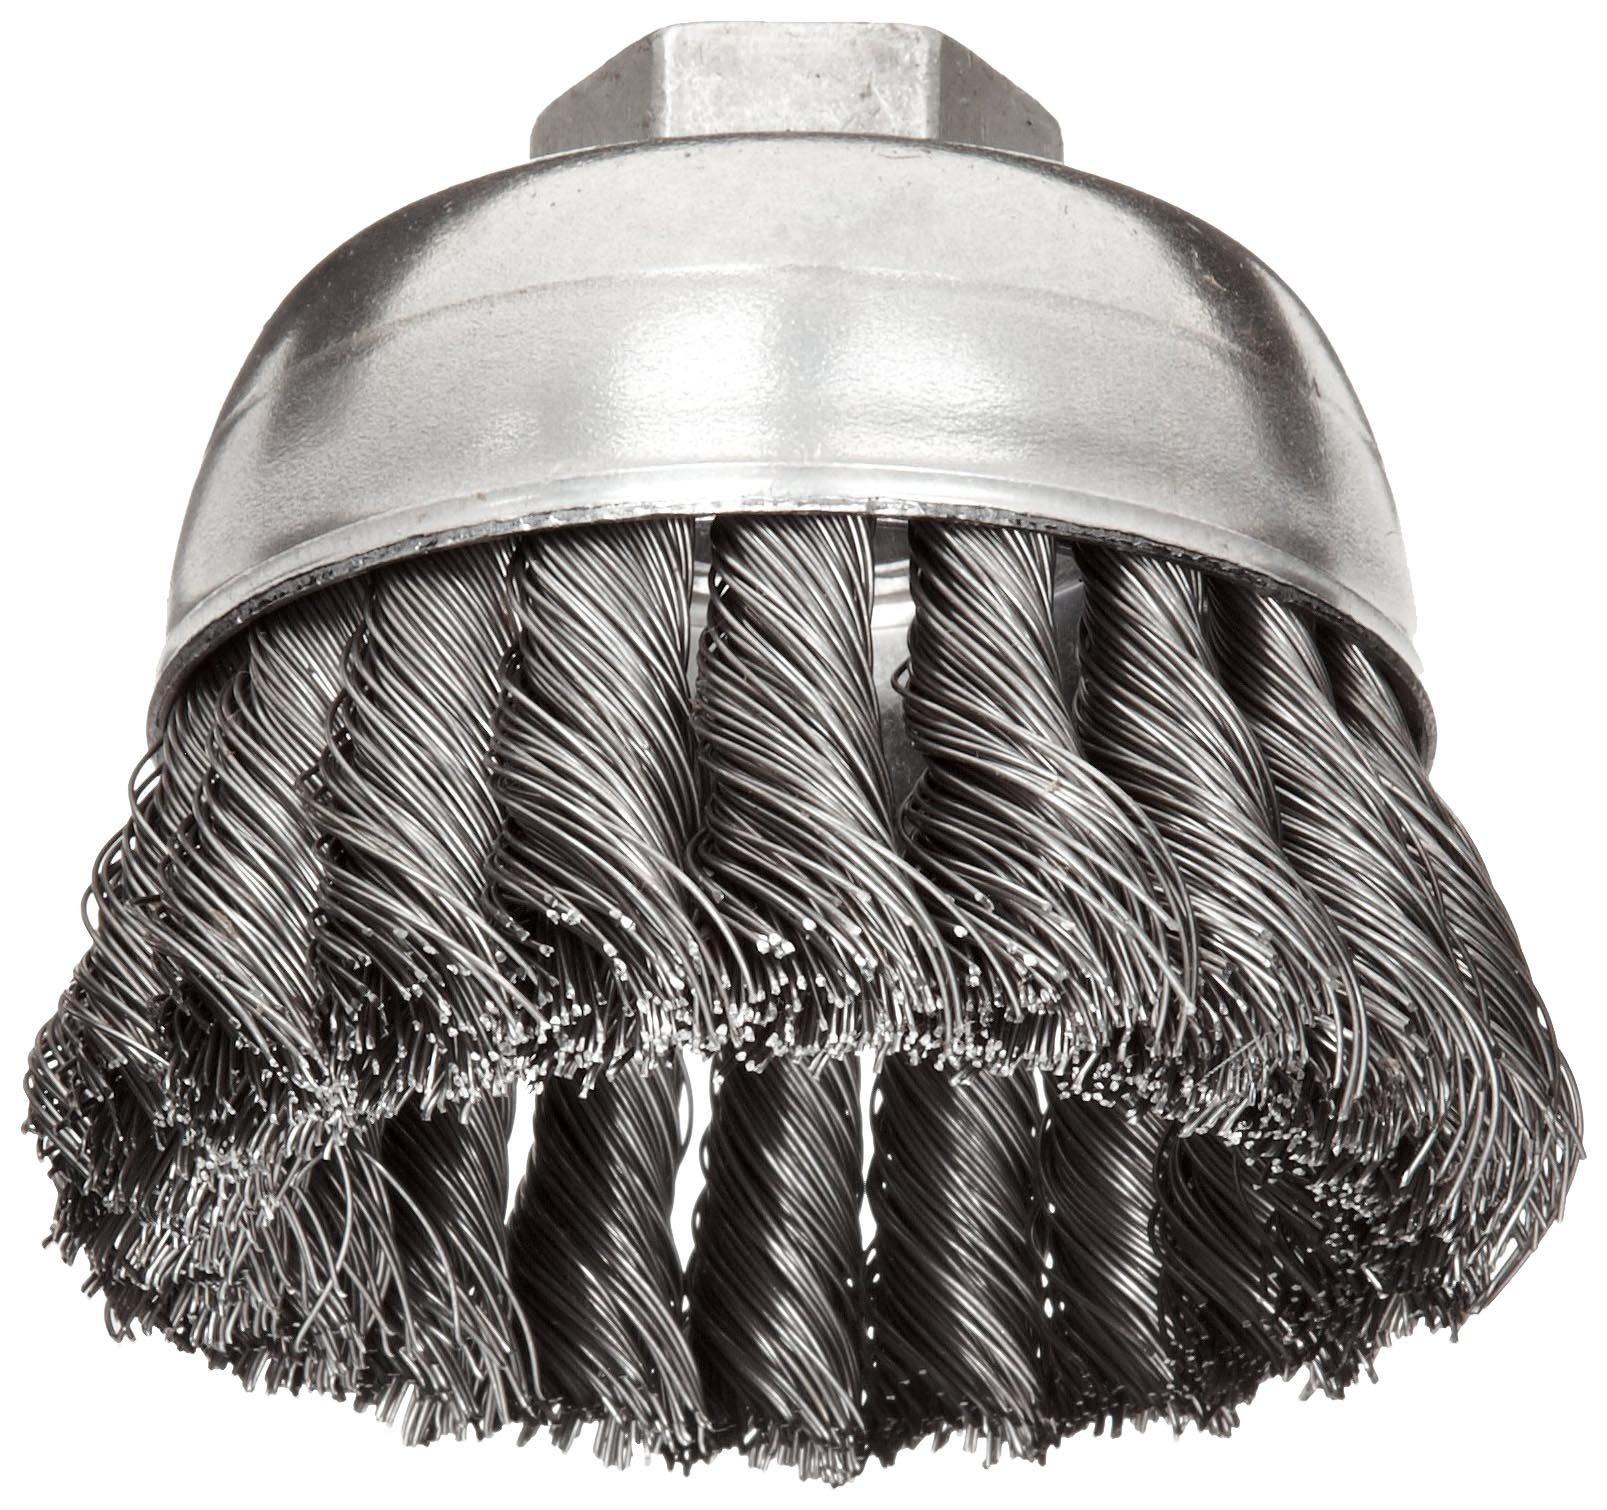 Weiler Wire Cup Brush, Threaded Hole, Steel, Partial Twist Knotted, Single Row, 2-3/4'' Diameter, 0.014'' Wire Diameter, 3/8''-24 Arbor, 1'' Bristle Length, 14000 rpm (Pack of 1)